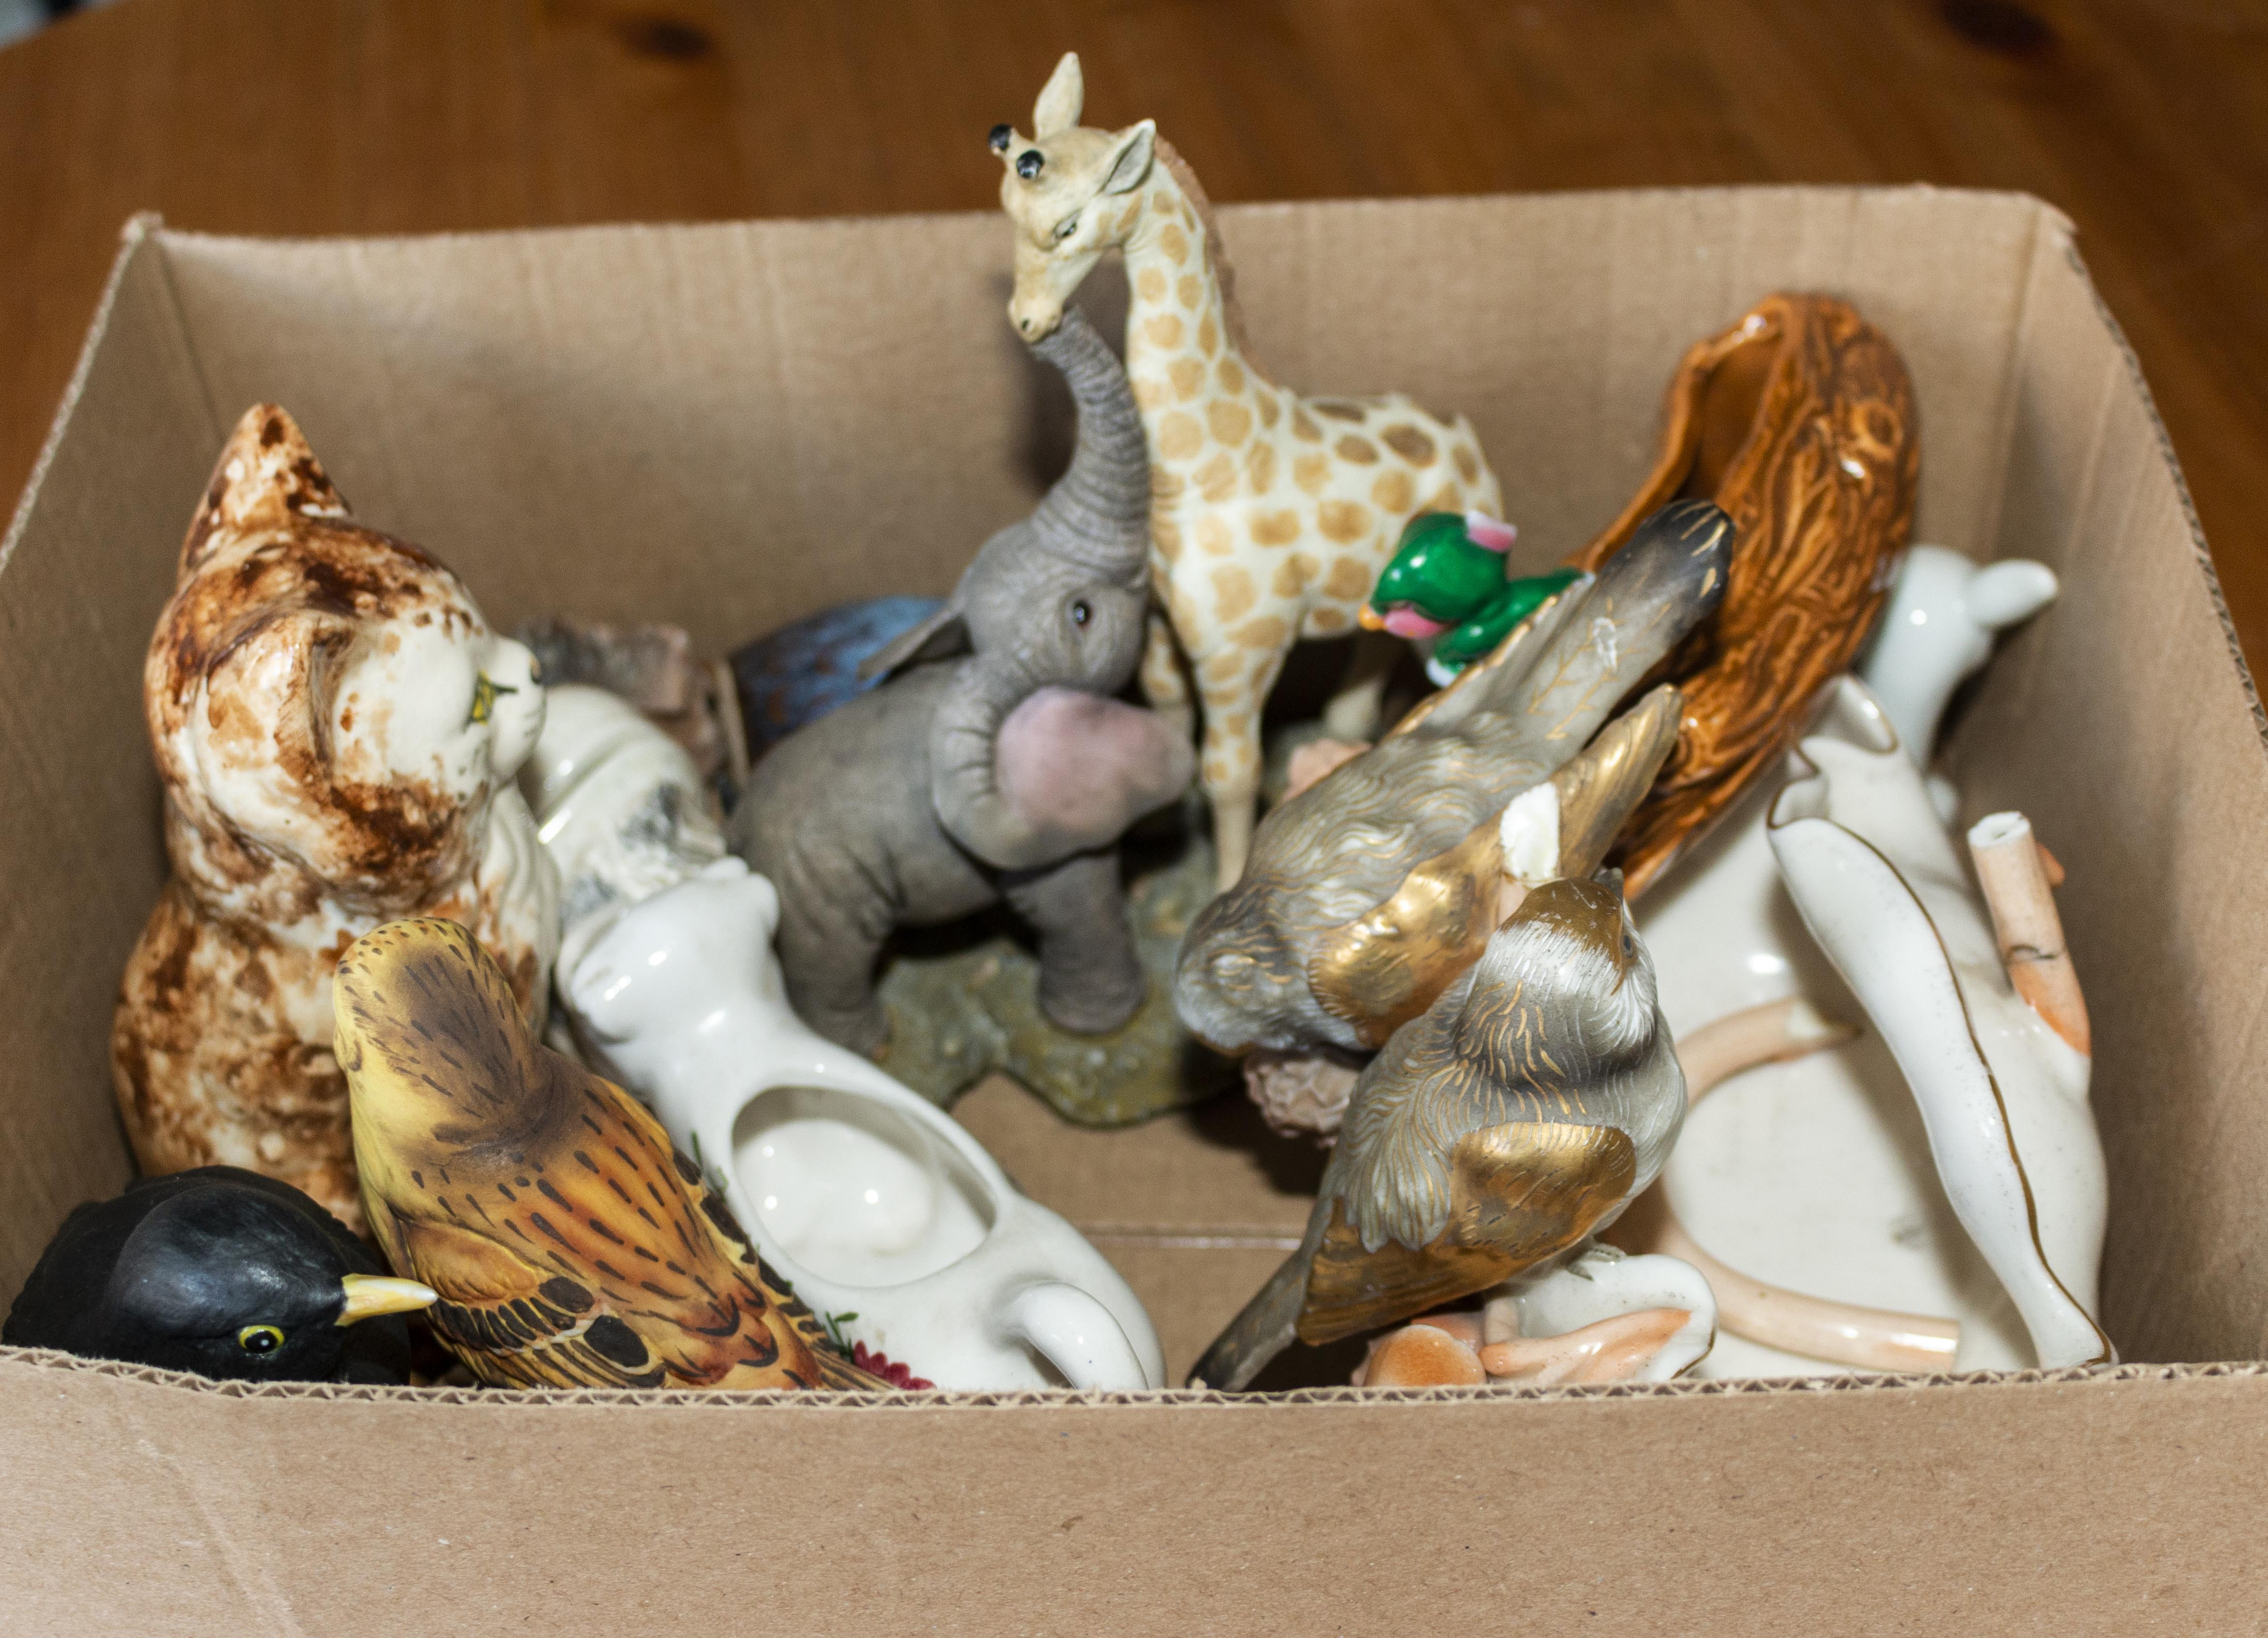 Lot 28 - A box containing pottery animals